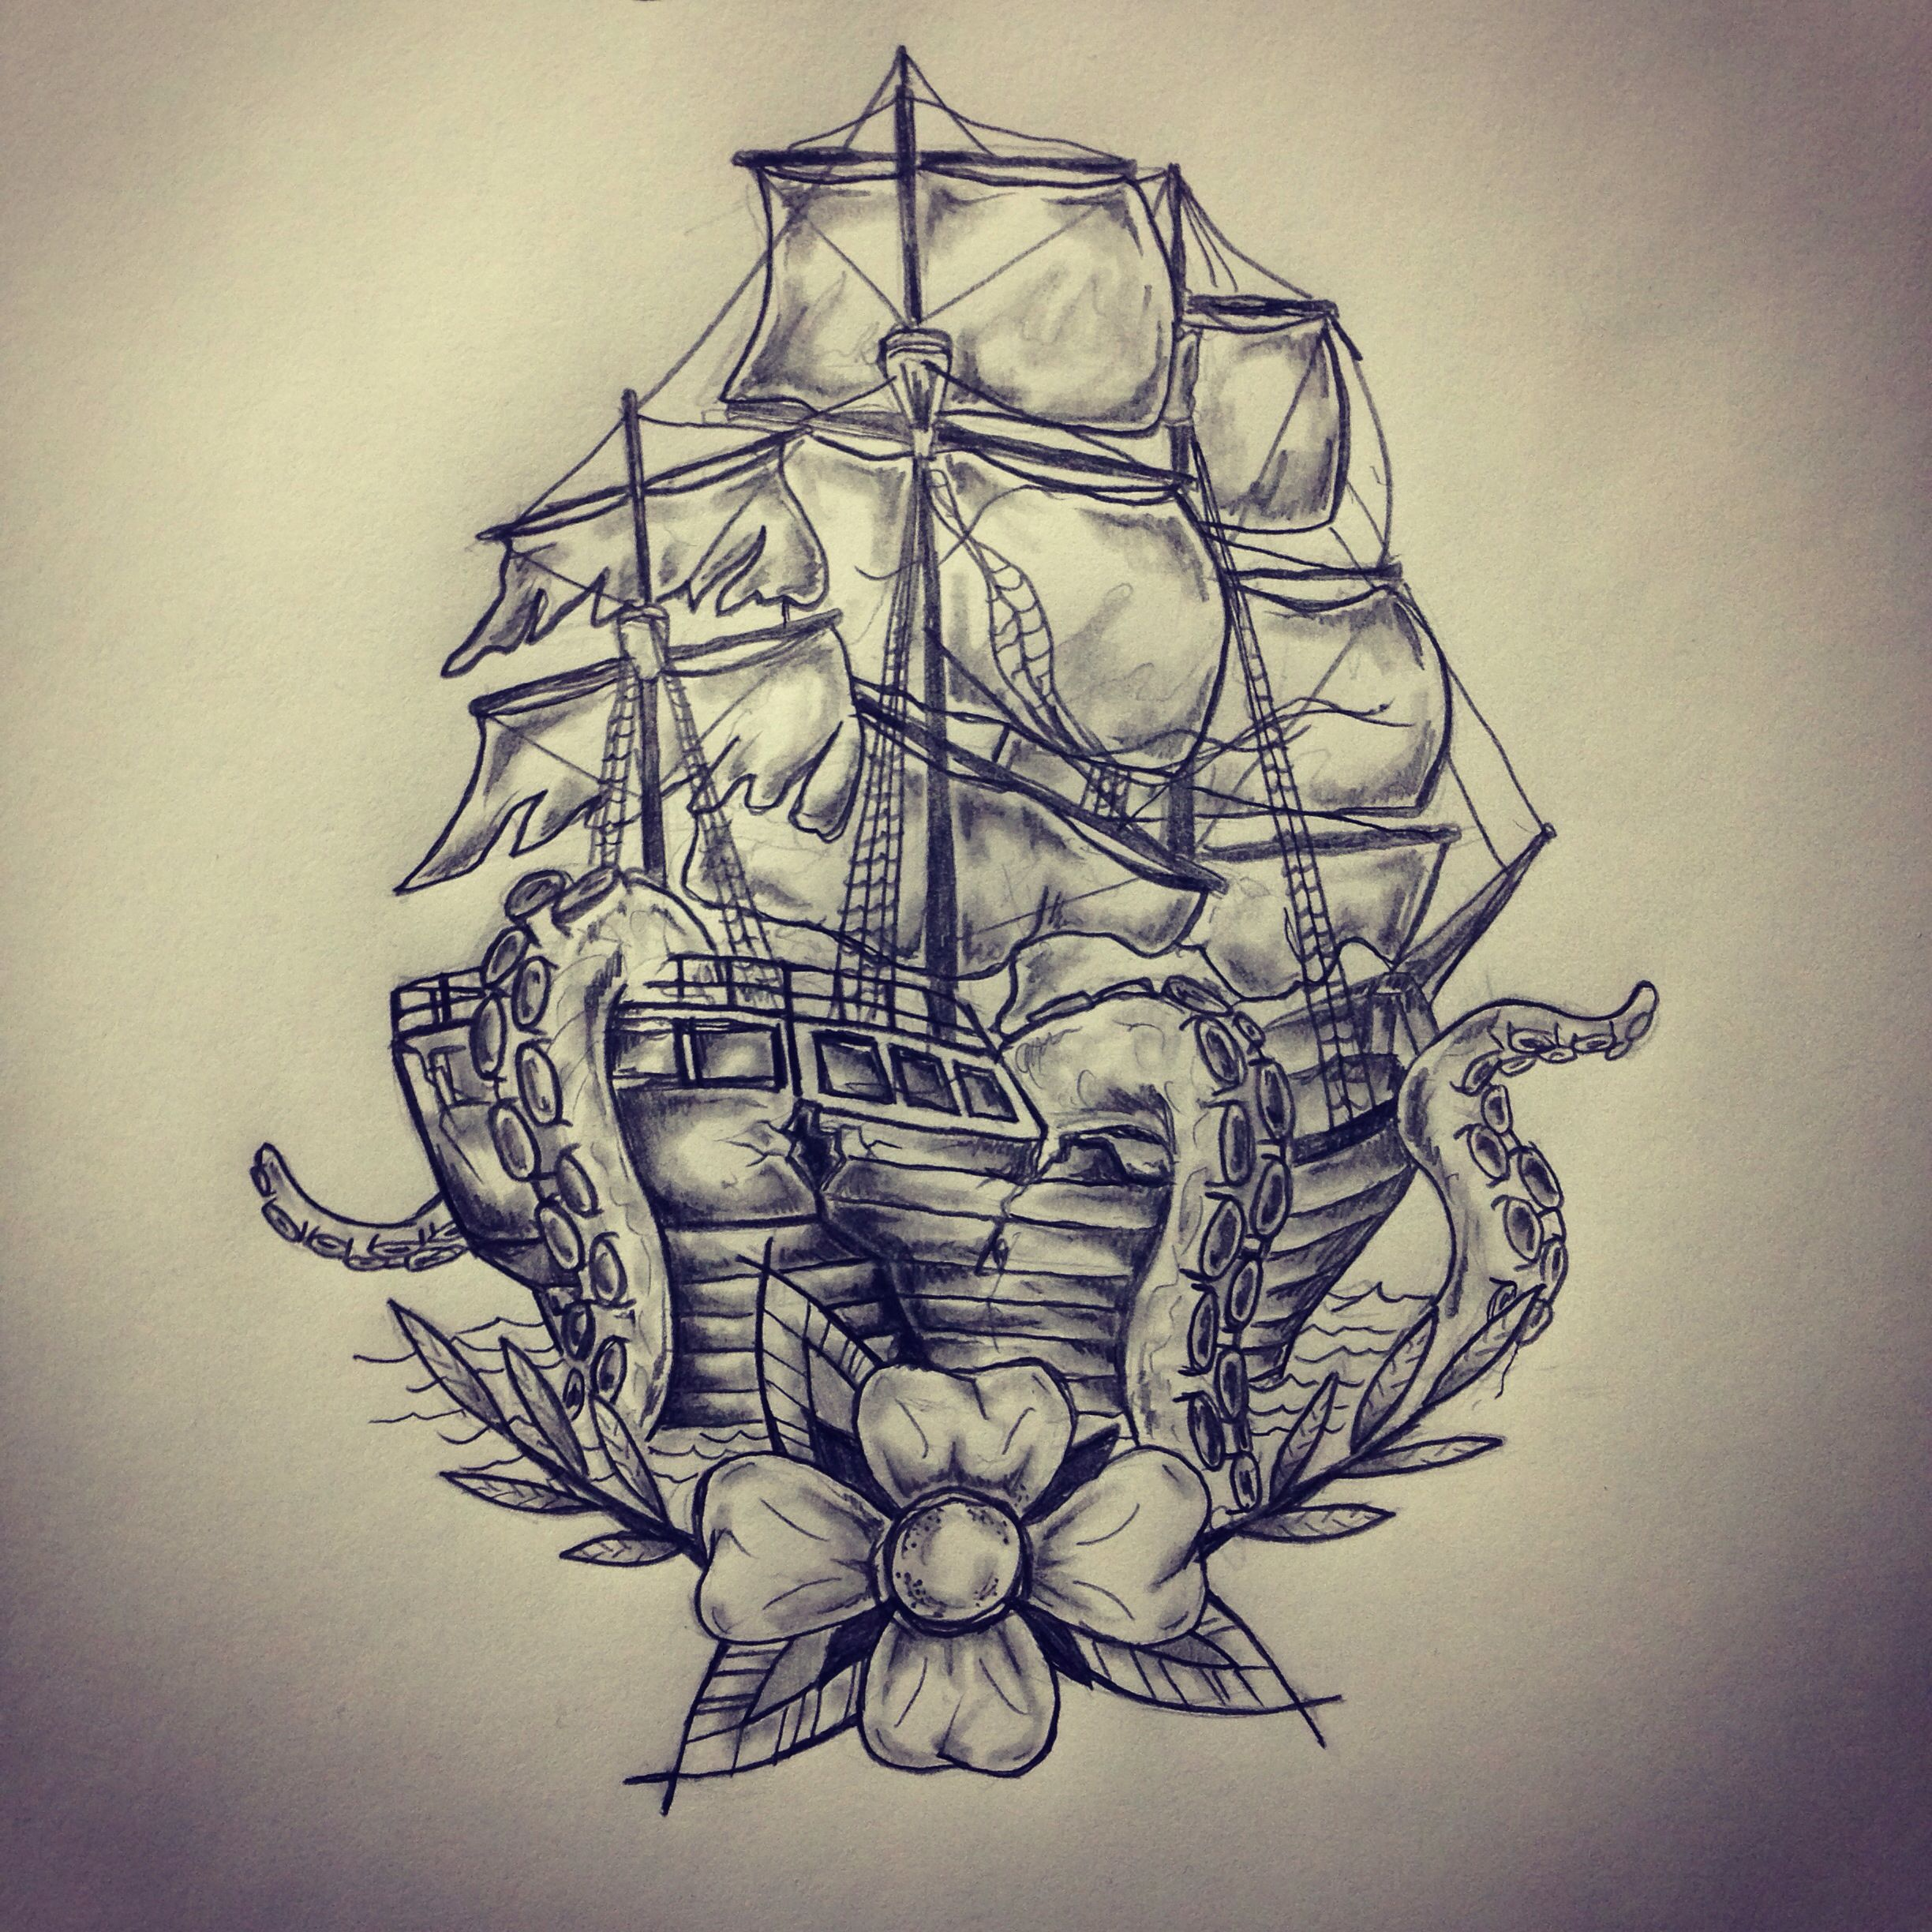 ship octopus tattoo sketch drawing by ranz pinterest octopus tattoos sketch drawing. Black Bedroom Furniture Sets. Home Design Ideas